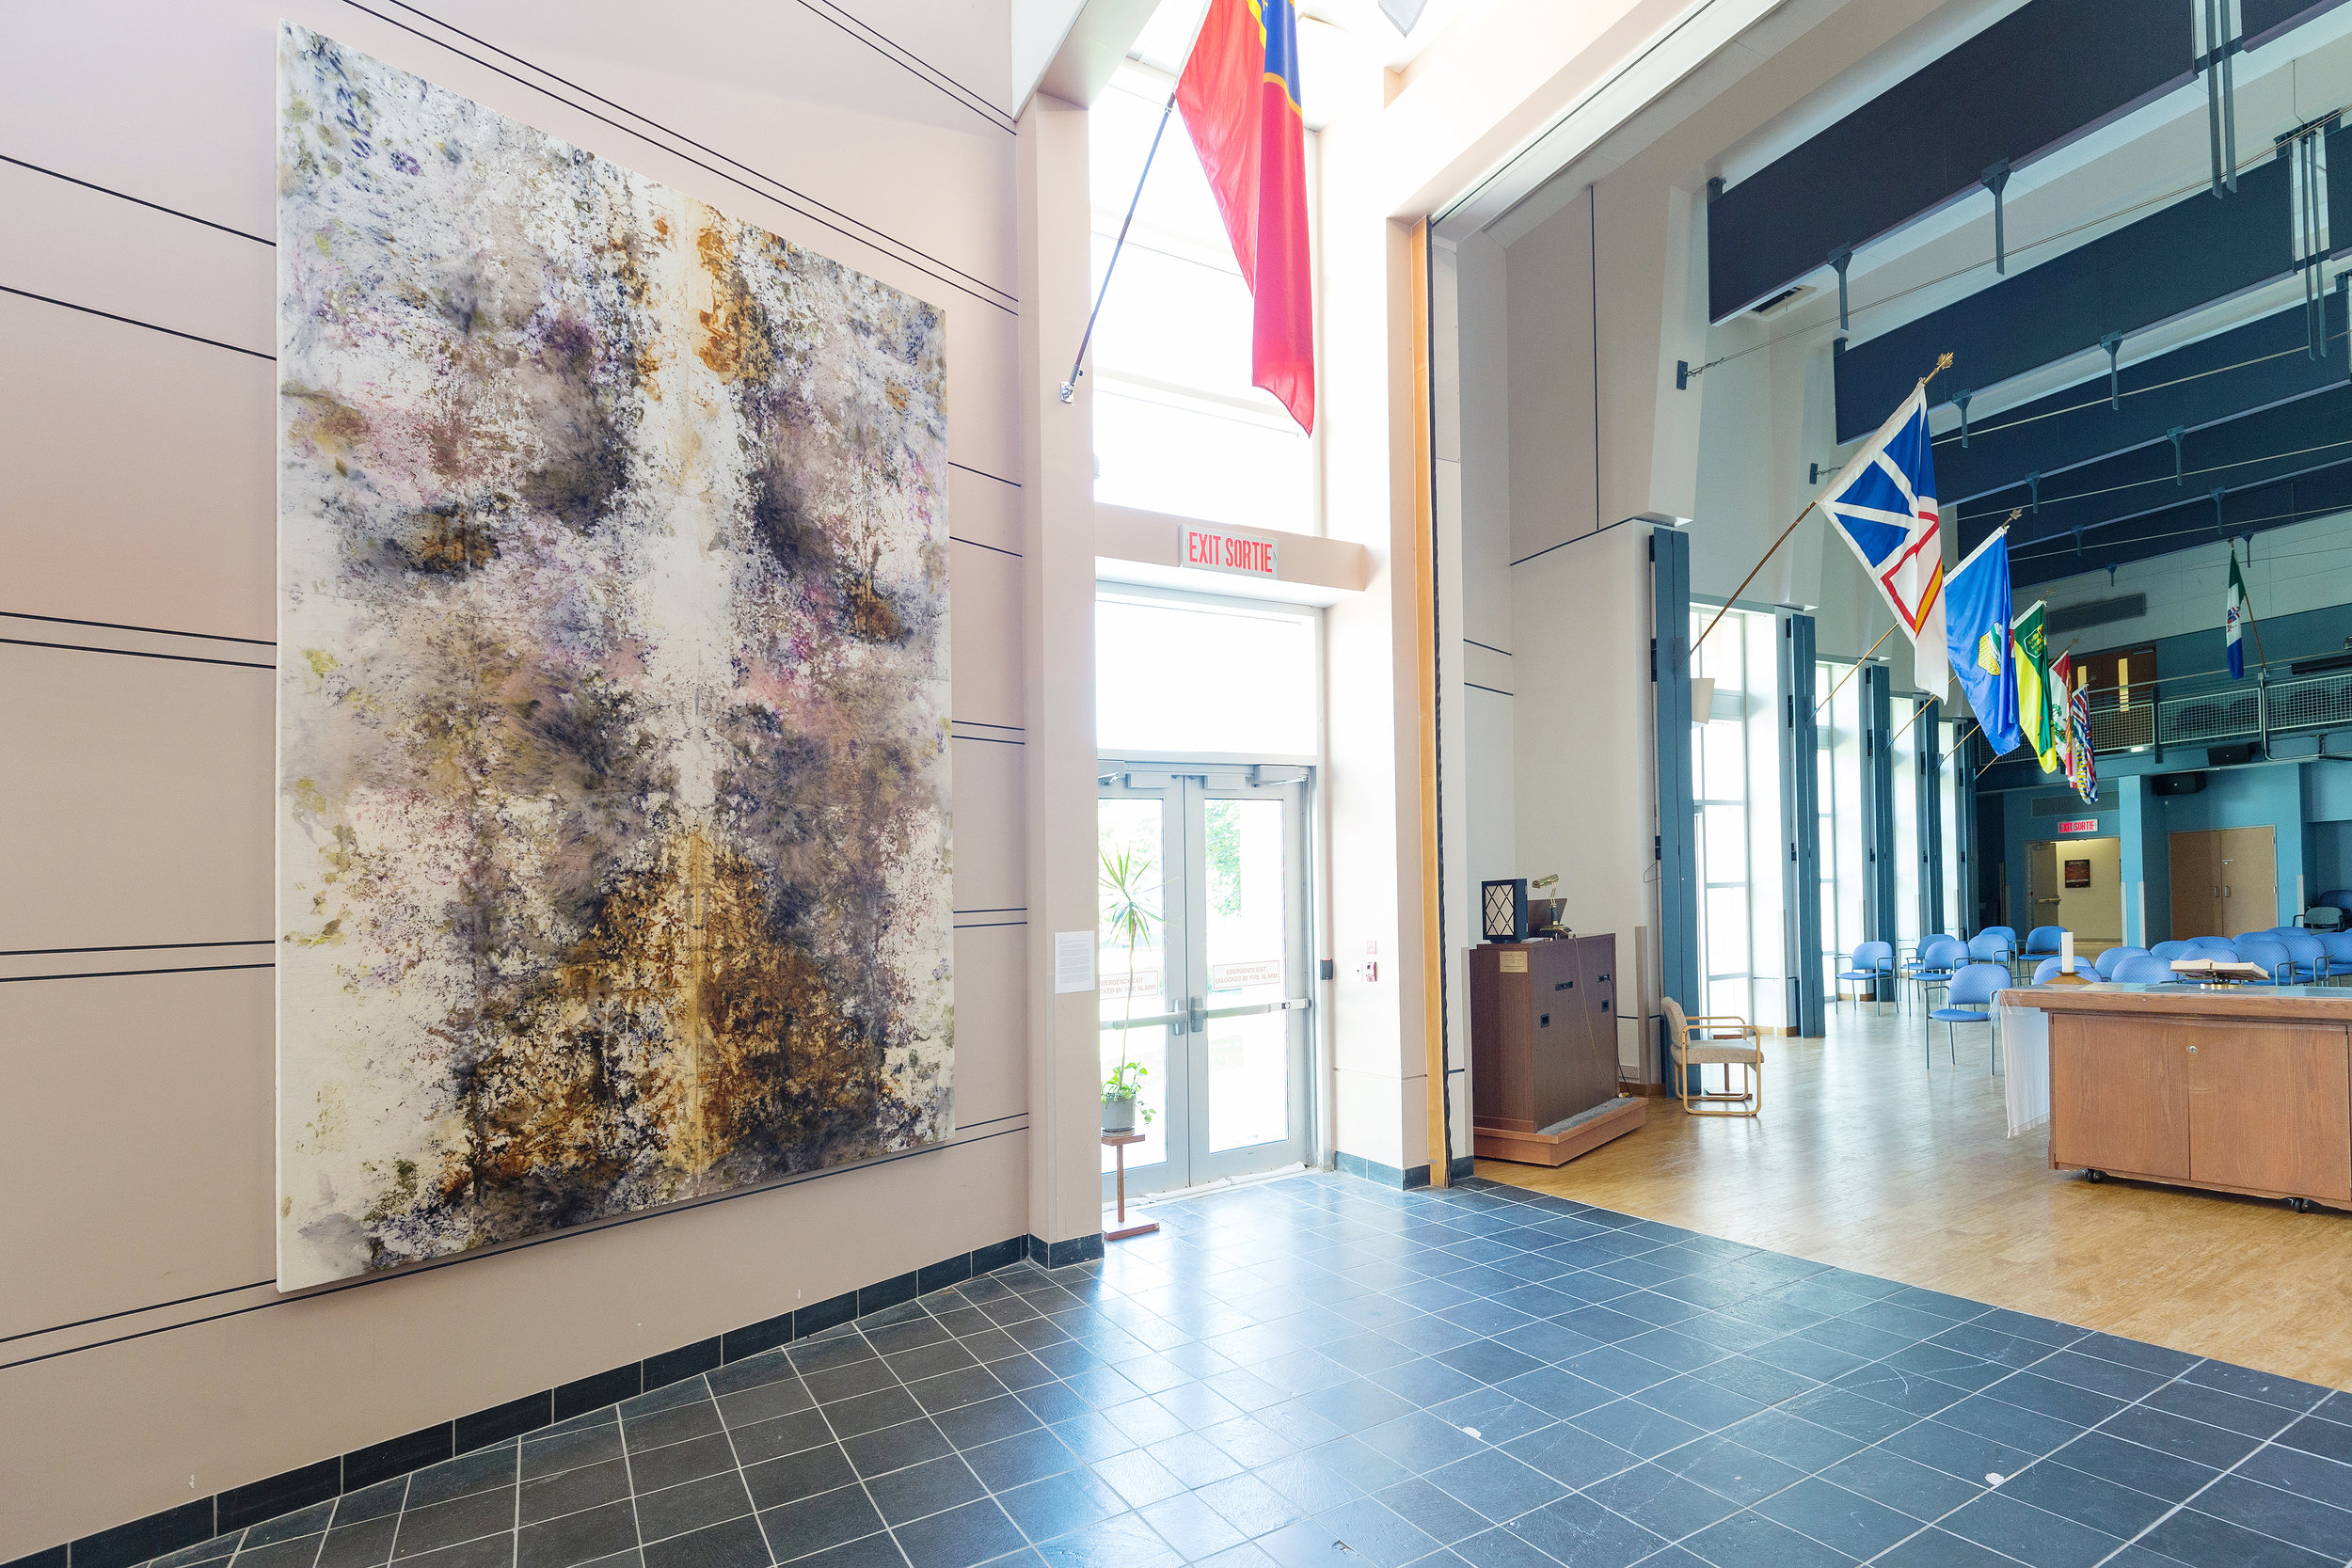 Installation View: Lupton Hall,  Perley and Rideau Veterans' Health Centre , Ottawa, On  Untitled, Various Plant Materials (including Black Walnut, Madder Root, Onion Skins, Roses, Sumac, and Wildflowers) and Rust Sediments on Canvas, 14 x 8 ft, 2019  This artwork was made by residents of the Perley and Rideau Veterans' Health Centre under the guidance of Creative Arts Instructor Gillian King and Spiritual Health Practitioner Jessie Stephenson, in collaboration with Therapeutic Recreation Creative Arts - Horticultural Services and Support Services.